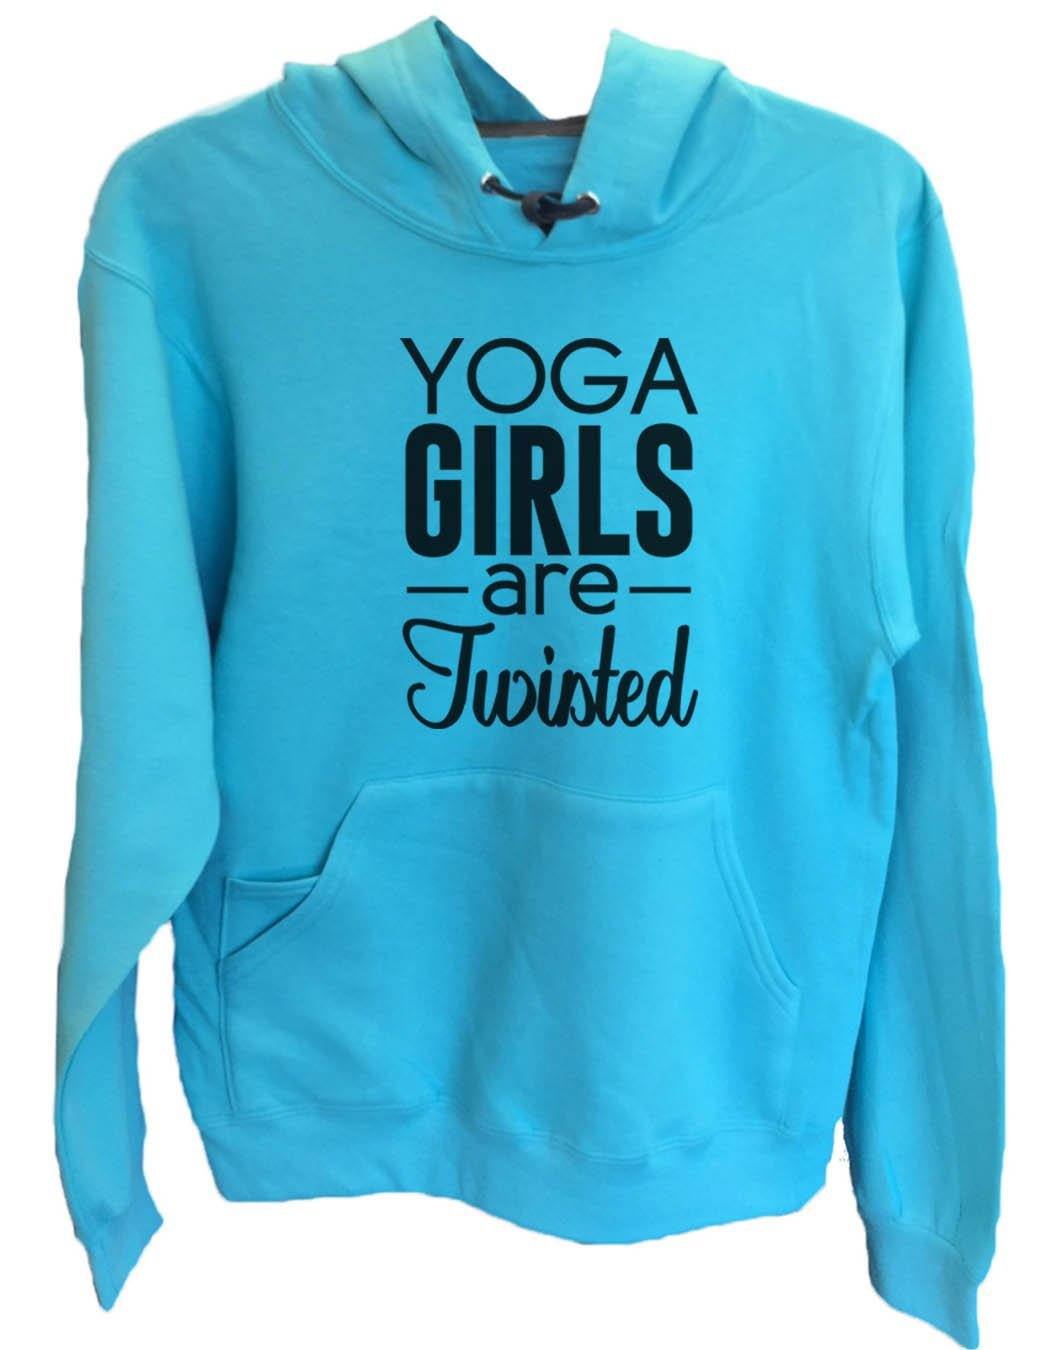 UNISEX HOODIE - Yoga Girls Are Twisted - FUNNY MENS AND WOMENS HOODED SWEATSHIRTS - 2120 Funny Shirt Small / Turquoise